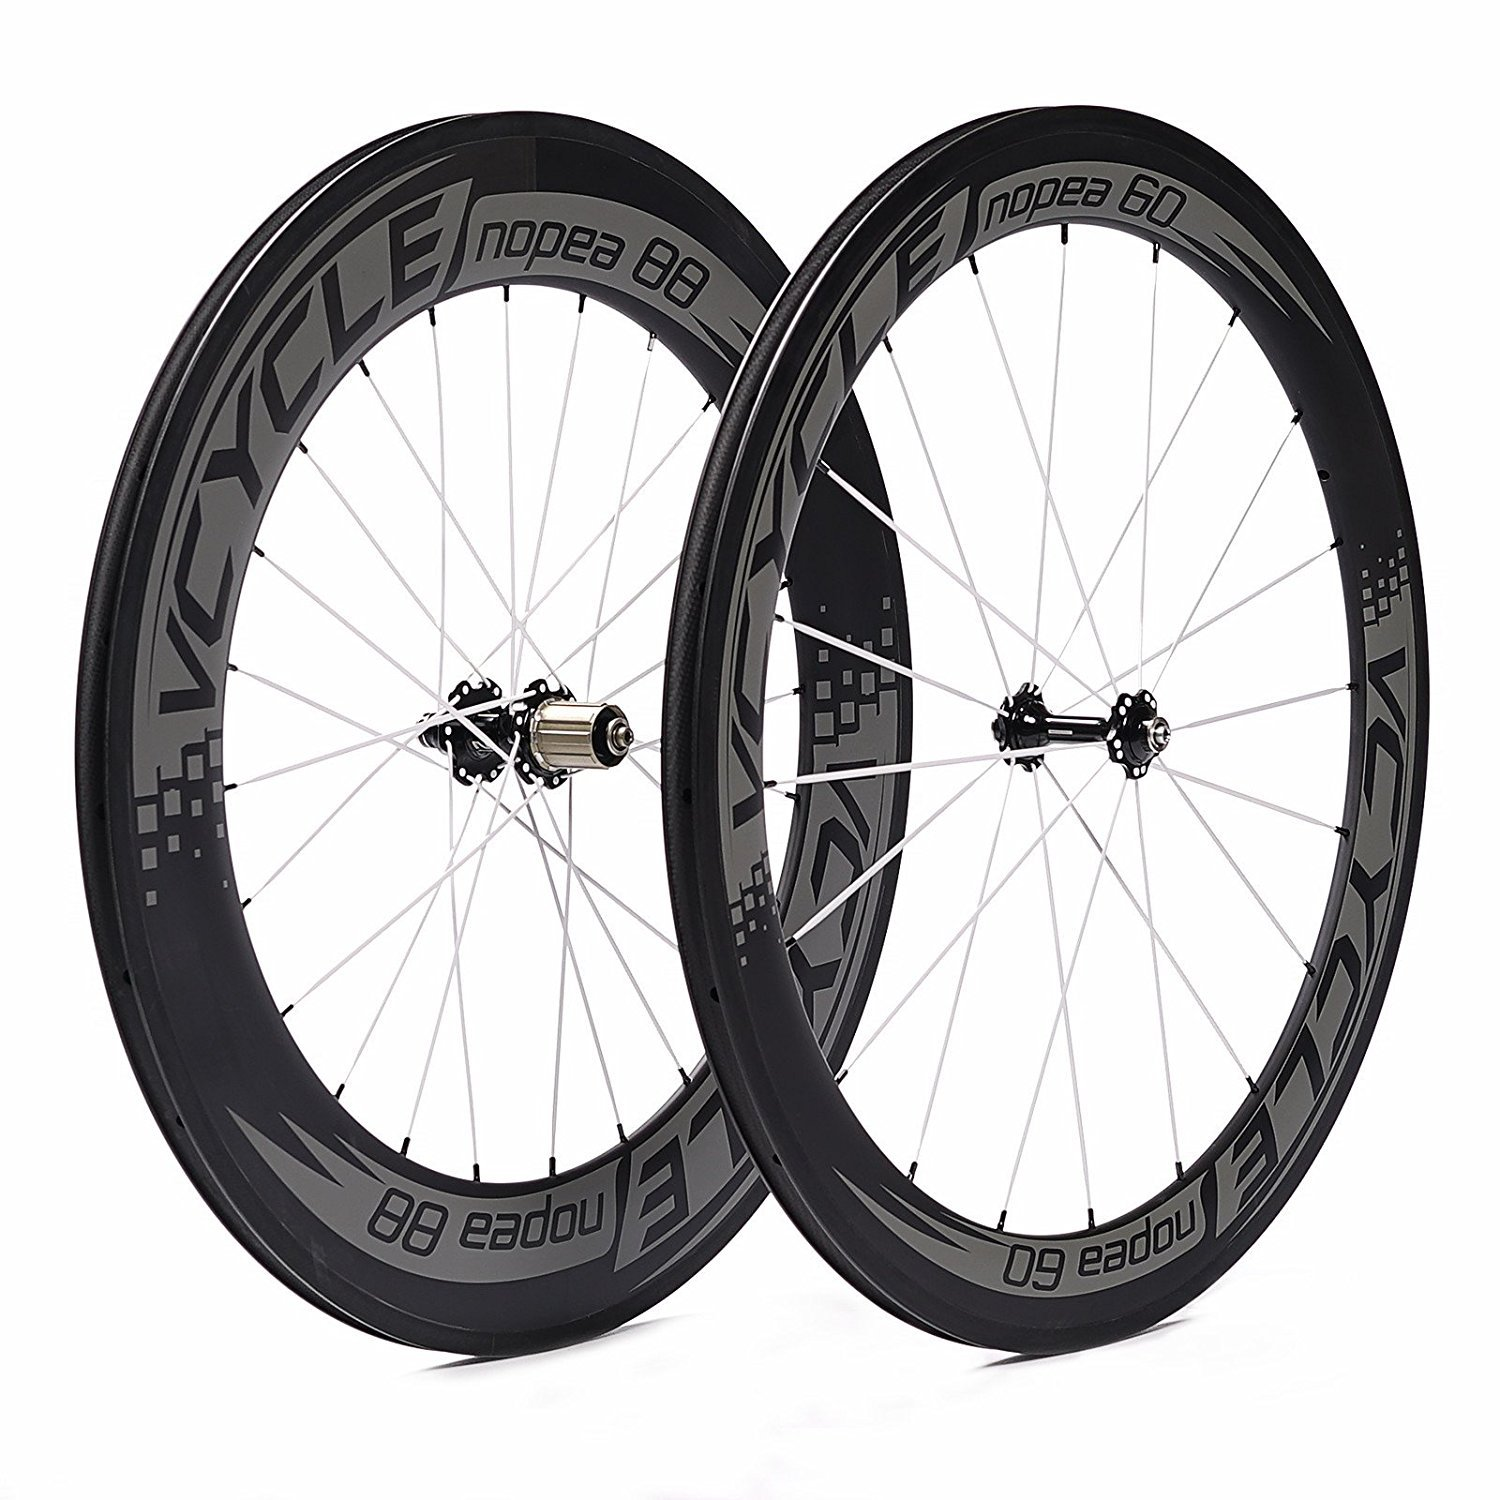 VCYCLE Nopea 700C Road Bike Carbon Wheelset in Bicycle Wheel Clincher Front 60mm Rear 88mm Shimano or Sram 8 9 10 11 Speed